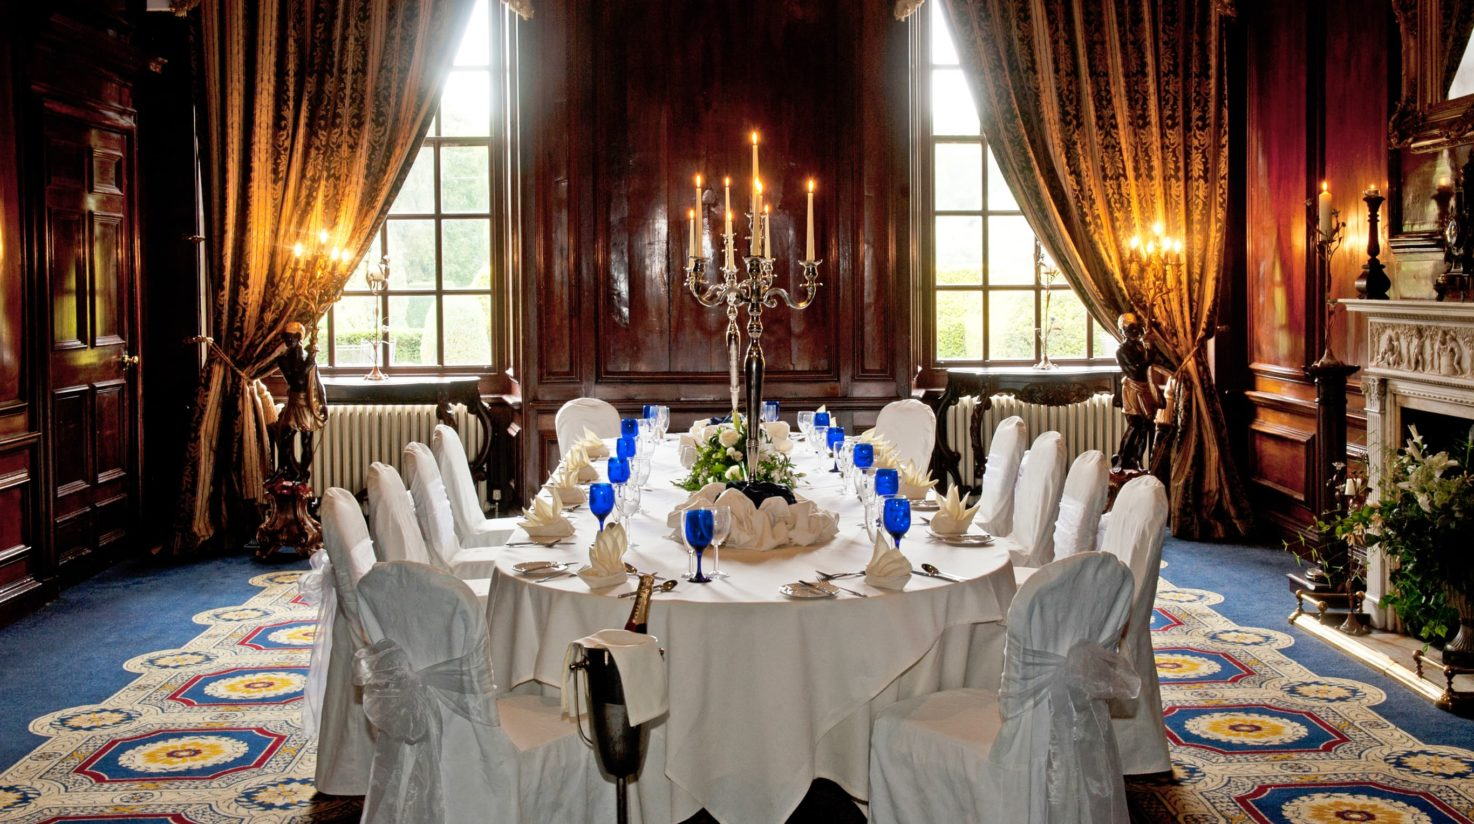 Private dining at Coombe Abbey